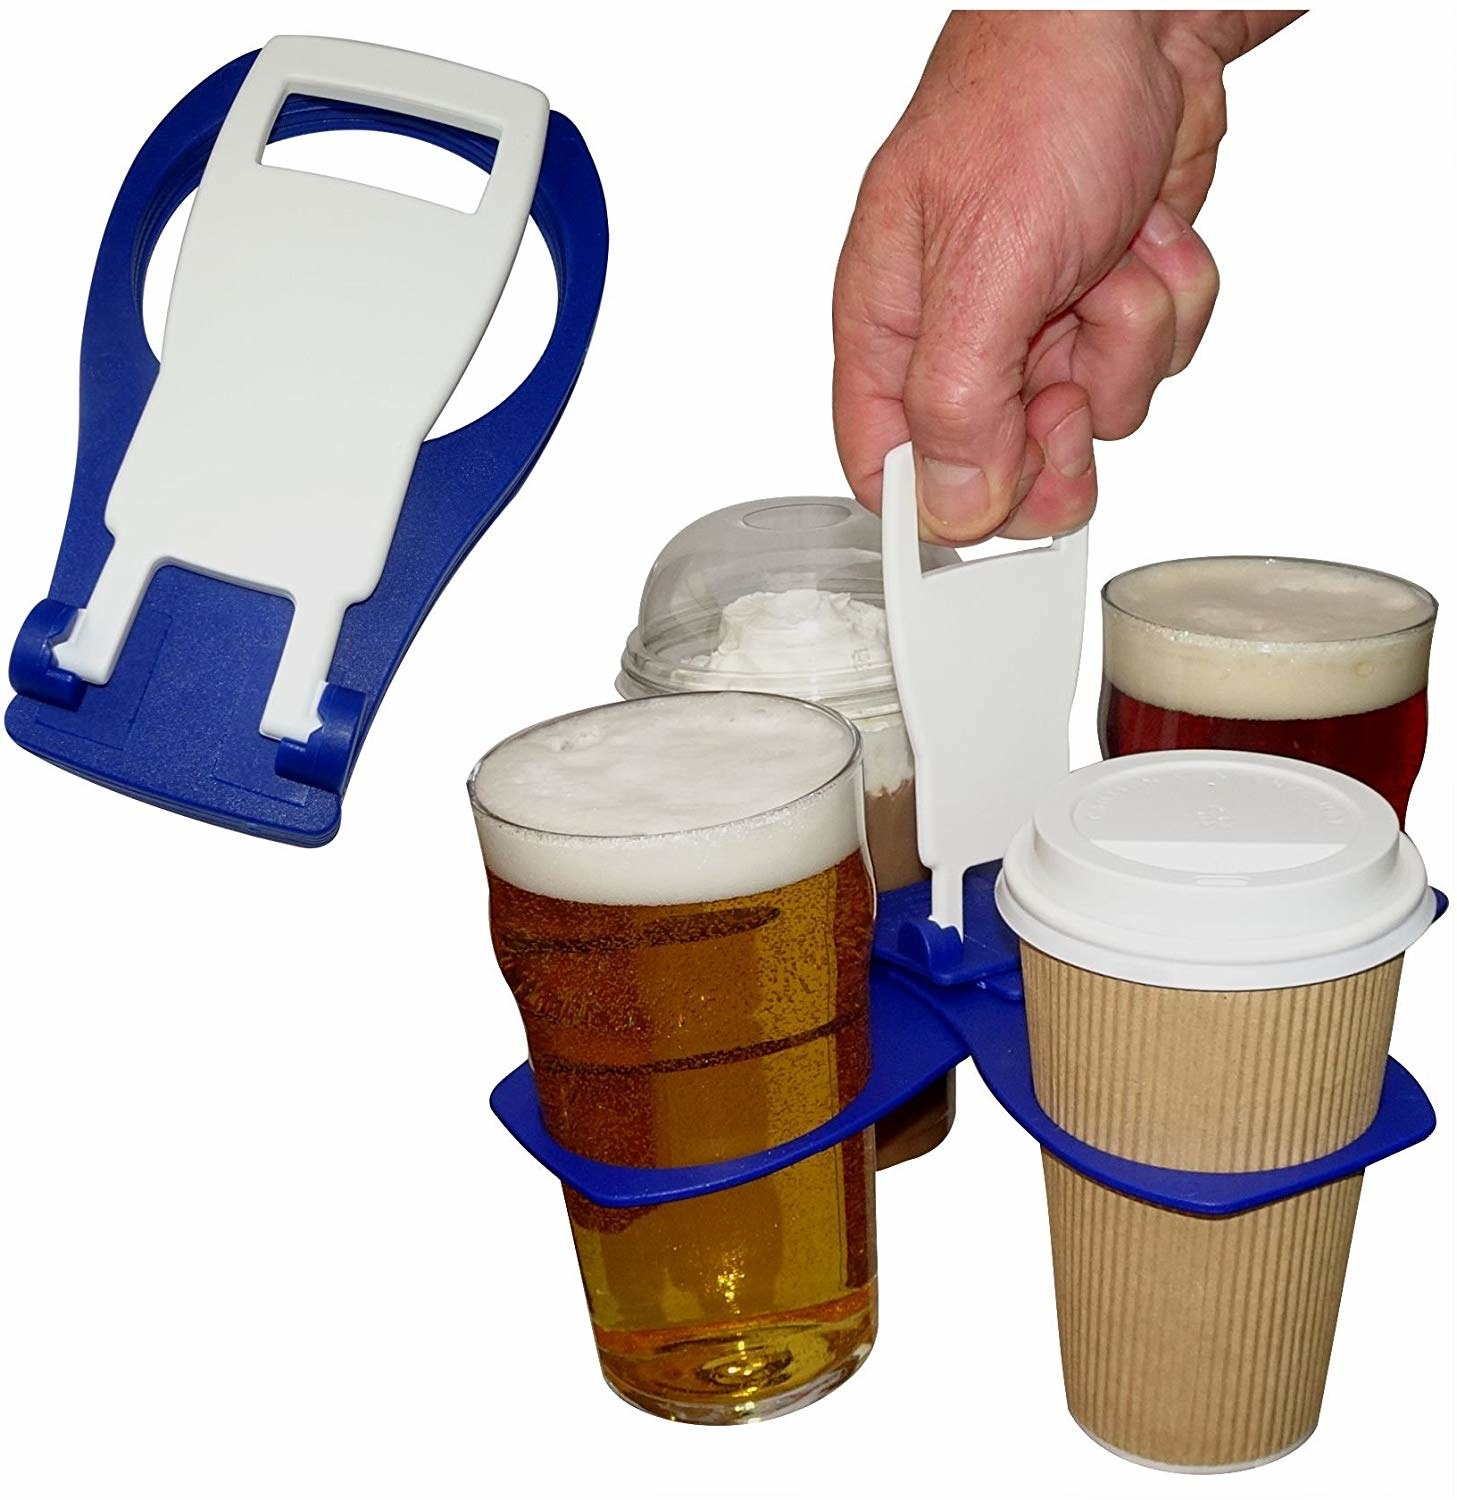 The drink carrier collapses into a flat device, but opens to hold four drinks like floating cup holders held by the handle in the center